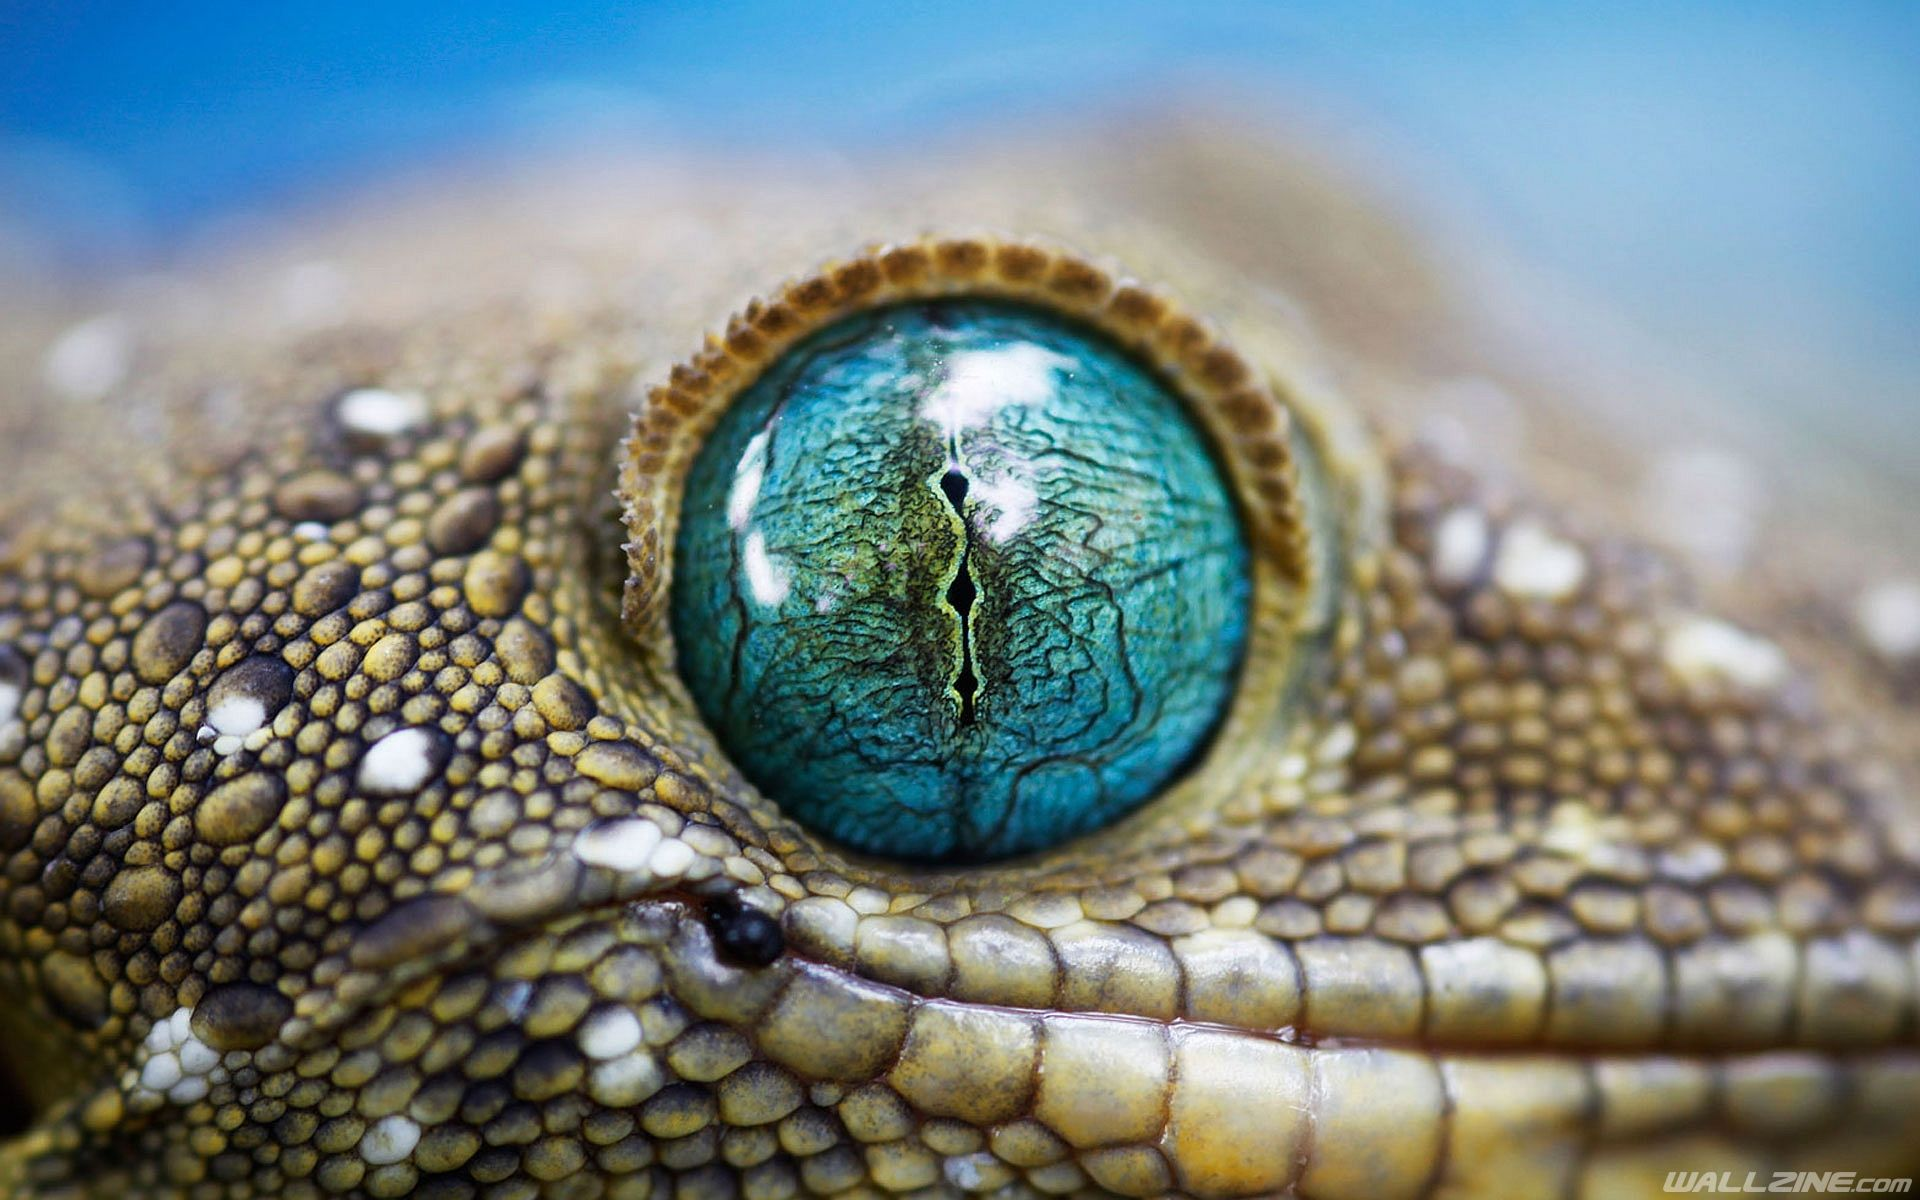 Lizard Eye Wallpaper | HD Desktop Wallpapers | Pinterest | Lizards